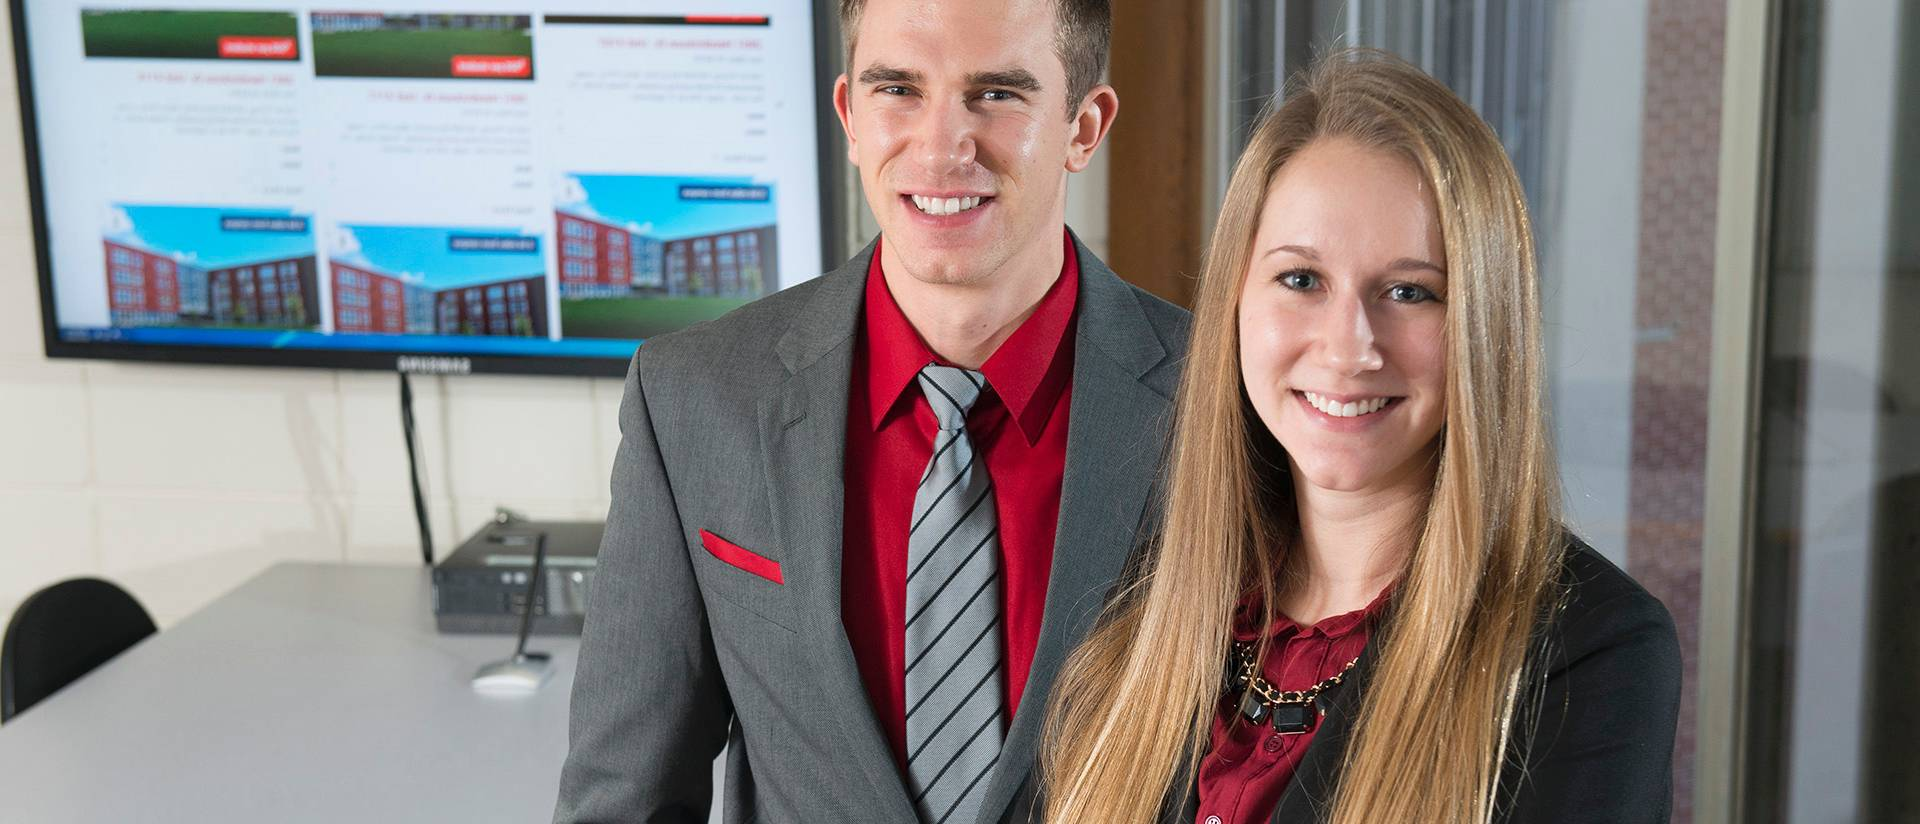 Holly and Josh Solomon's website helps students find housing